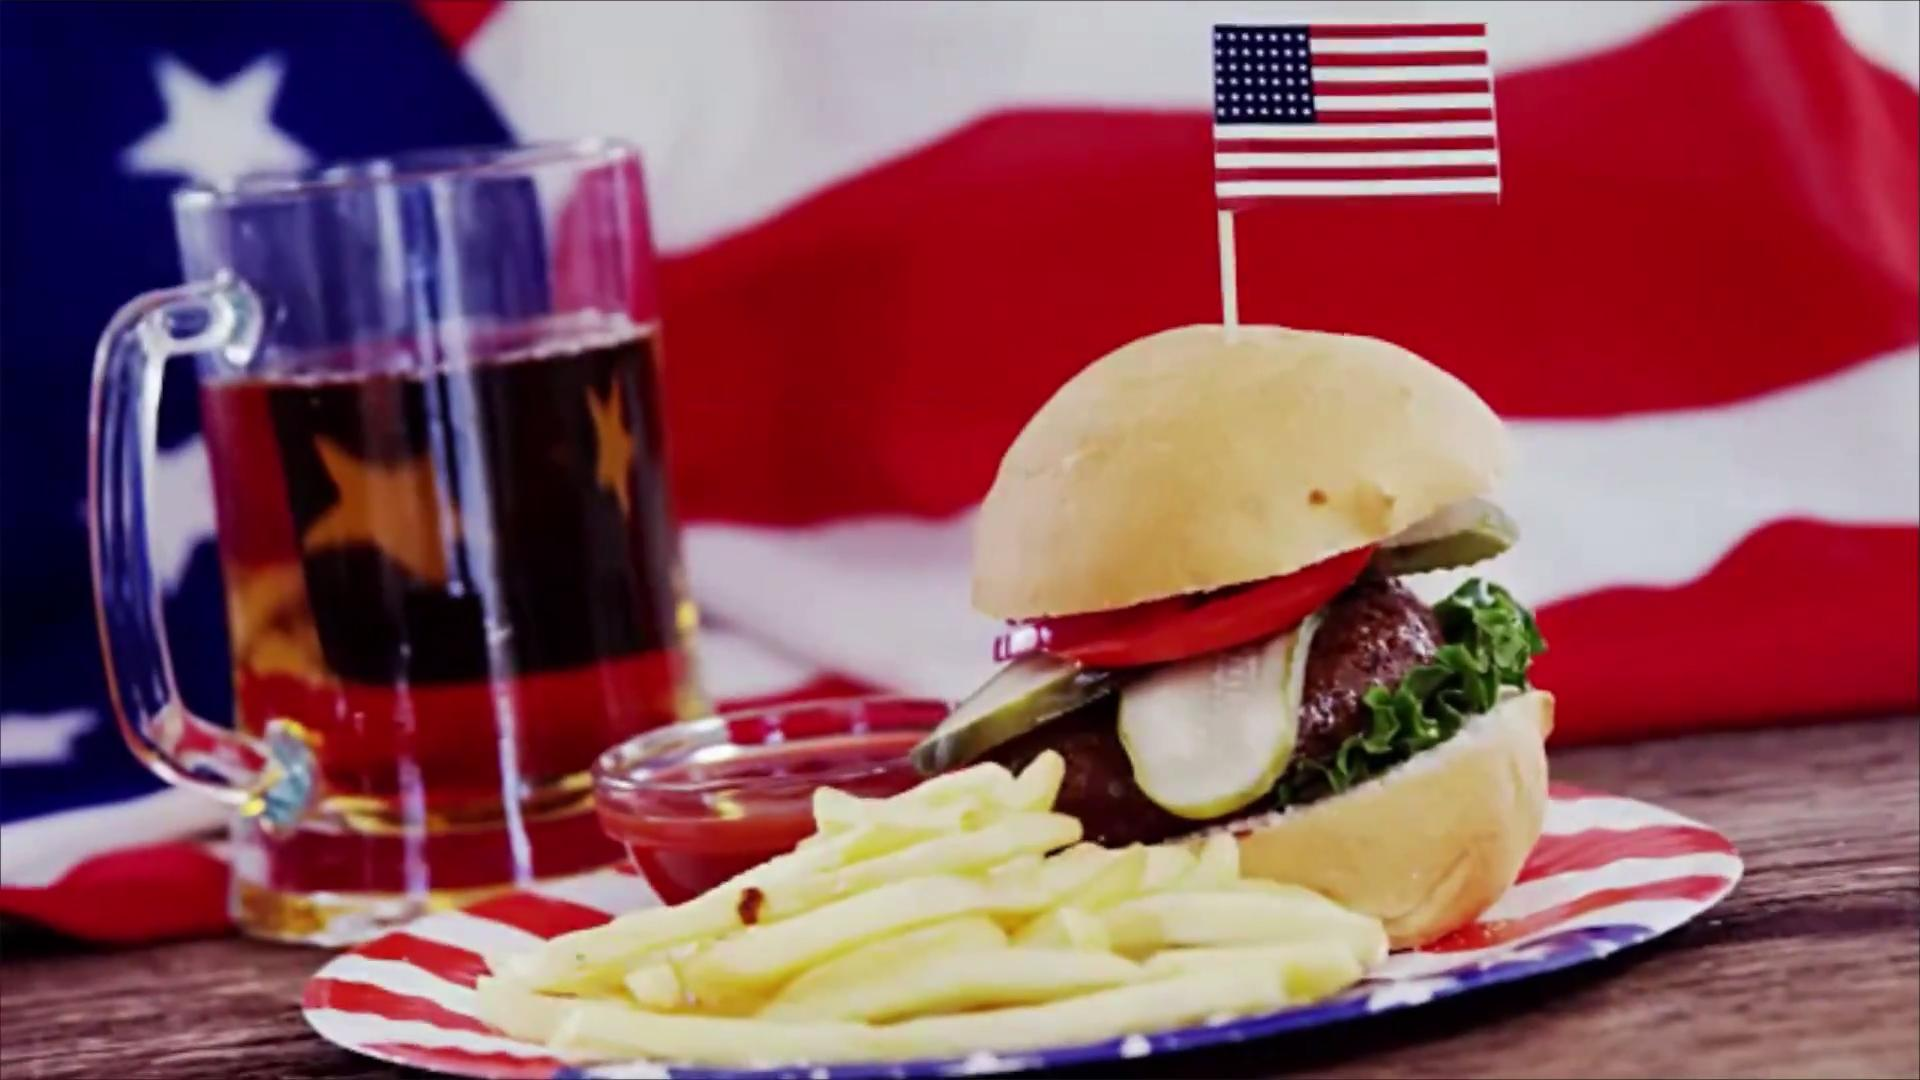 5 American Foods the Rest of the World Finds Disgusting, According to Reddit